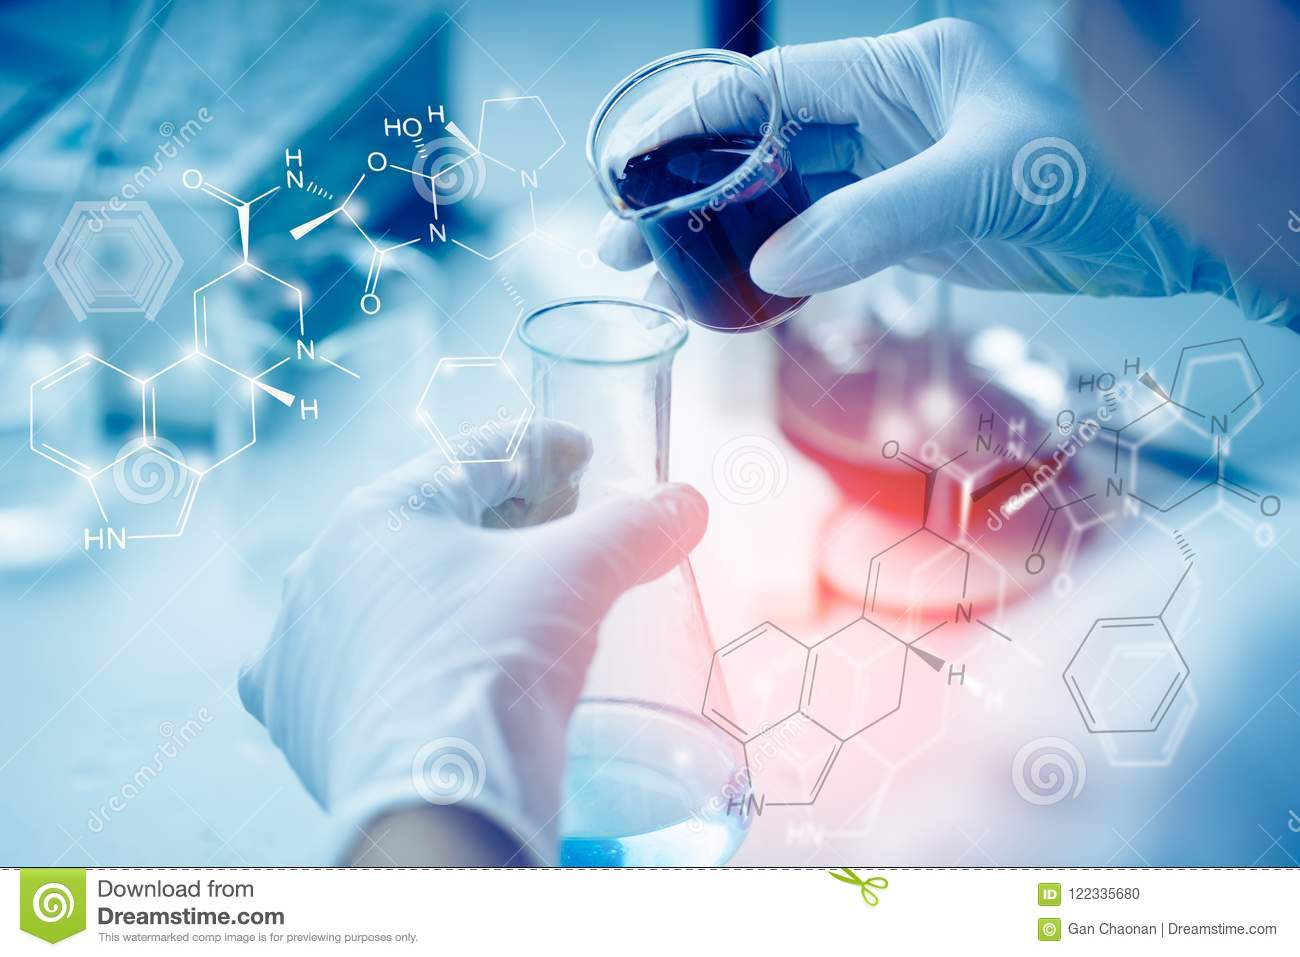 Young Asian Scientist are certain activities on experimental science like mixing chemicals or entry data to develop medicine,